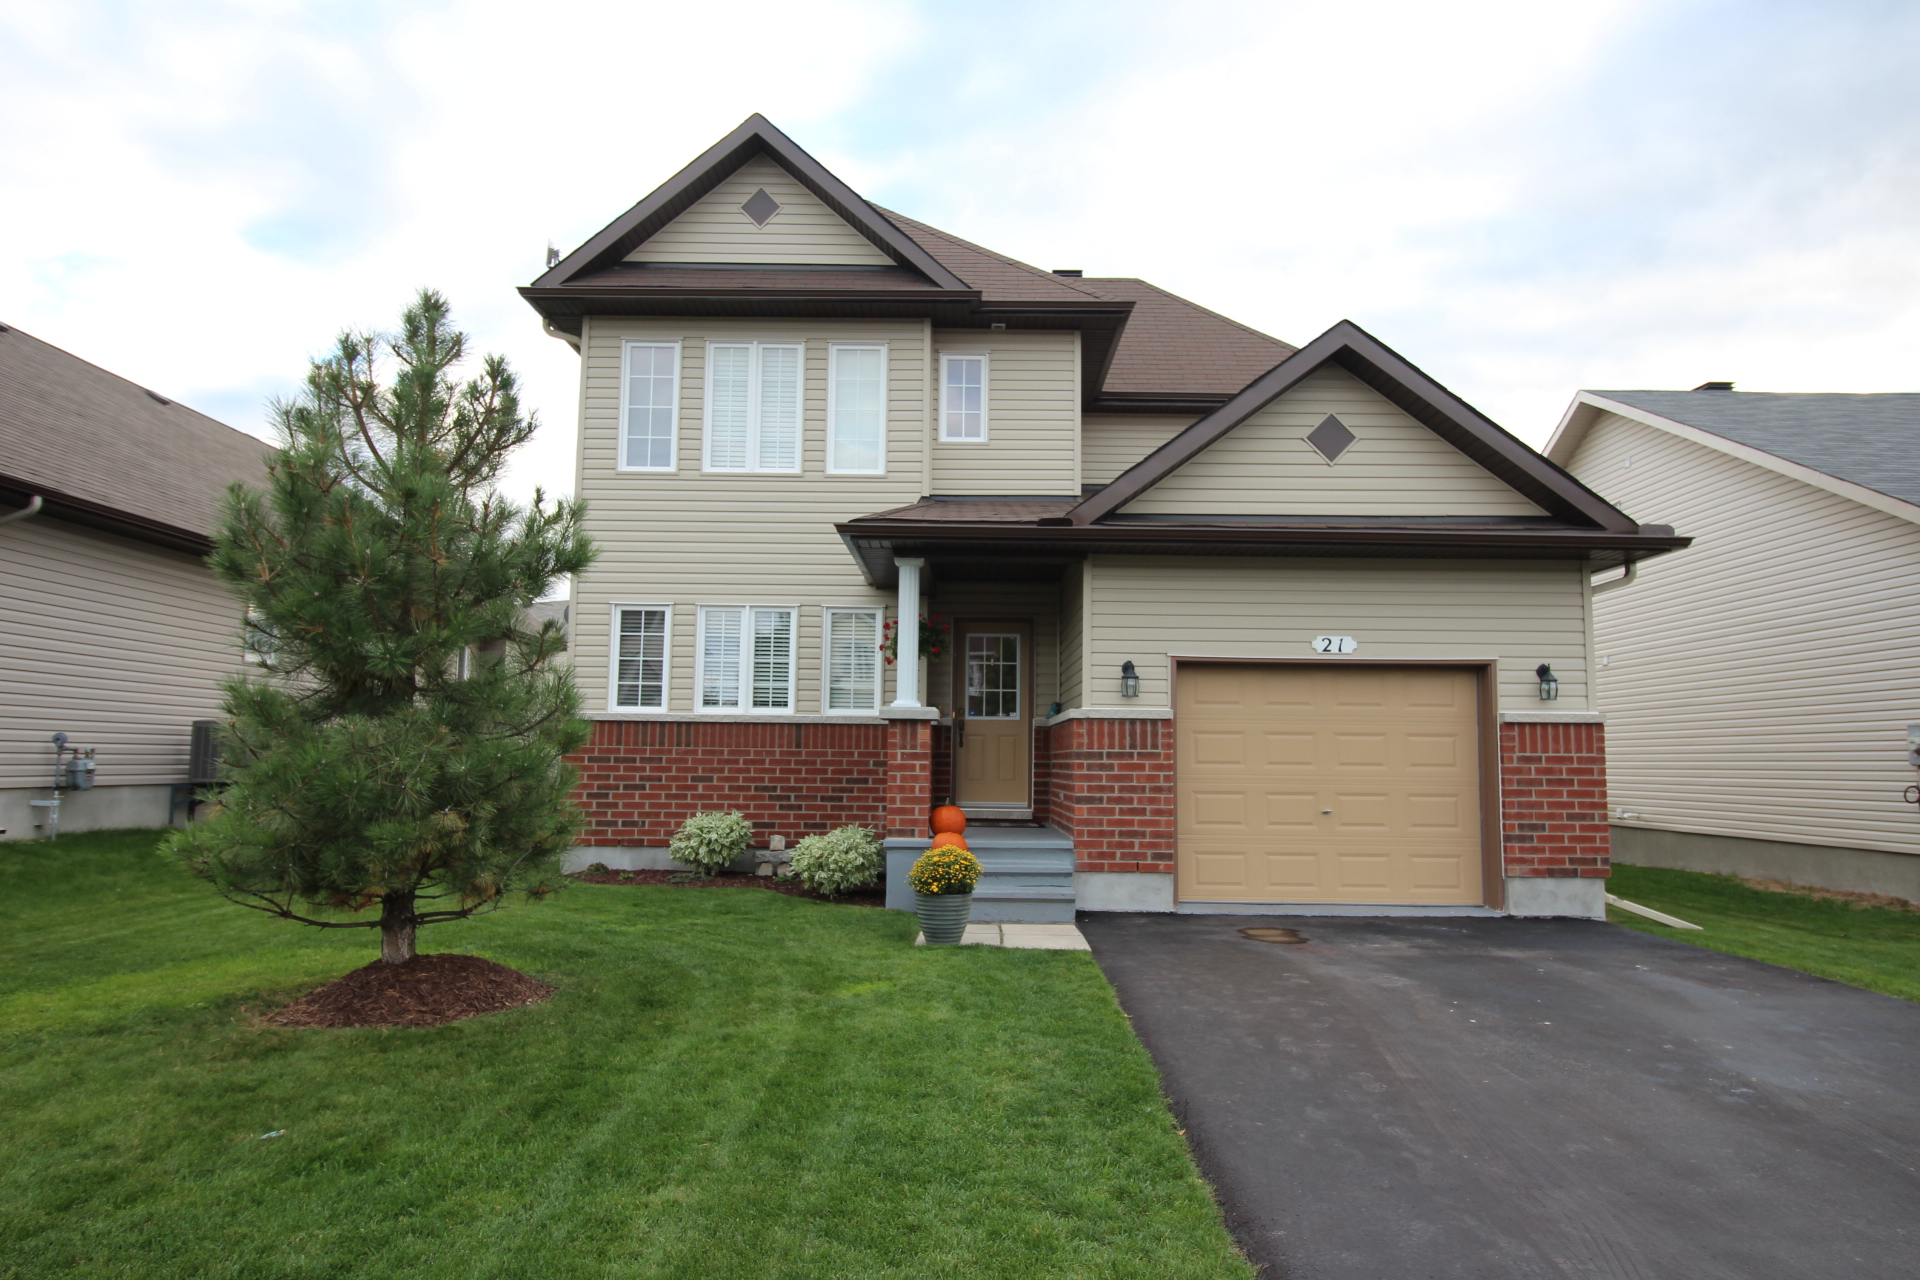 21 Moe Robillard St - Lovely 2 Storey Detached Home in nearby Arnprior!